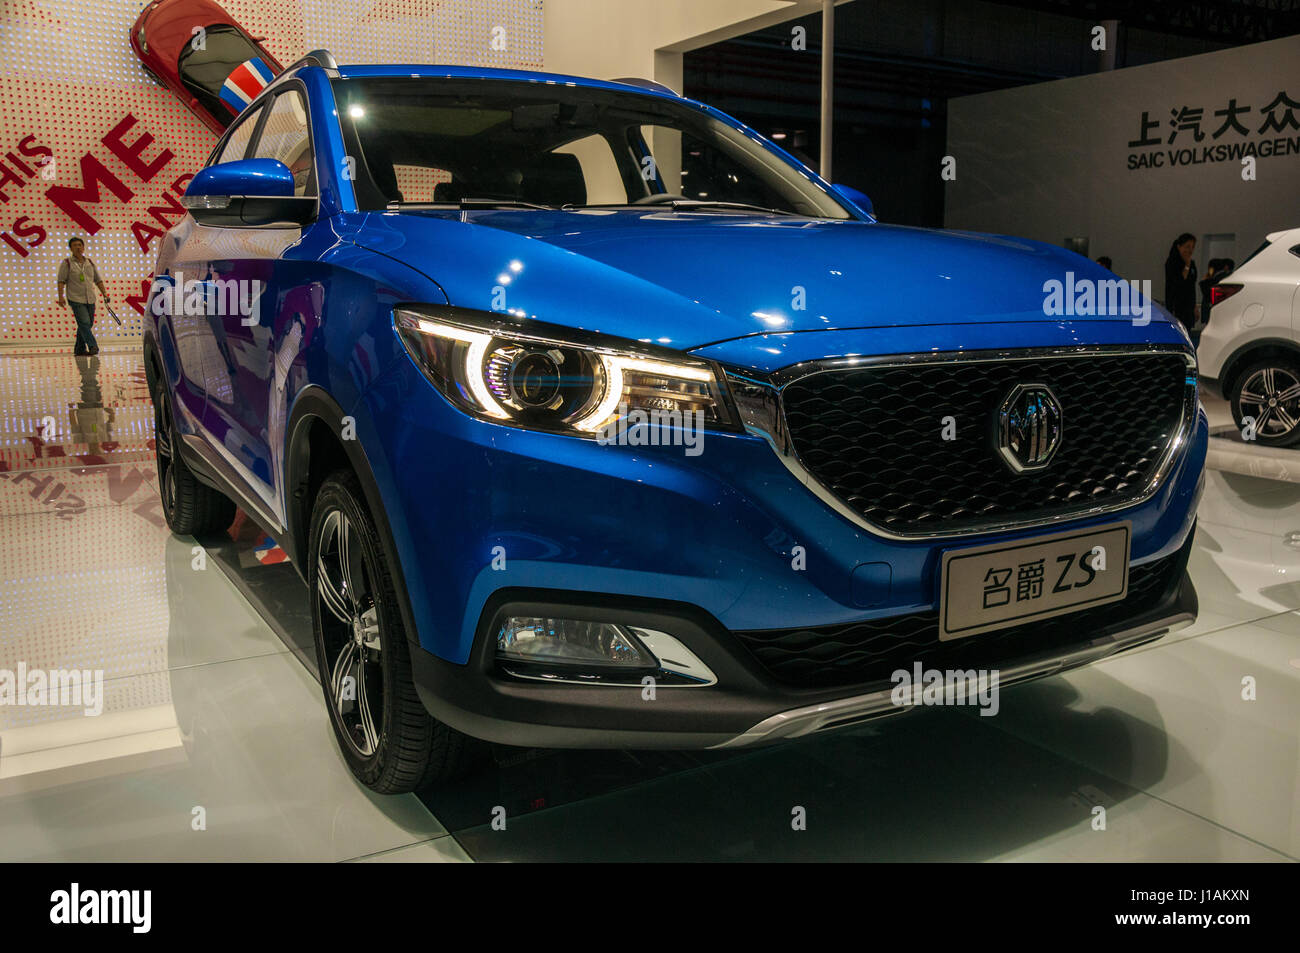 Shanghai, China. 19th Apr, 2017. Production version of the MG ZS small SUV at the 2017 Shanghai Auto Show Credit: - Stock Image